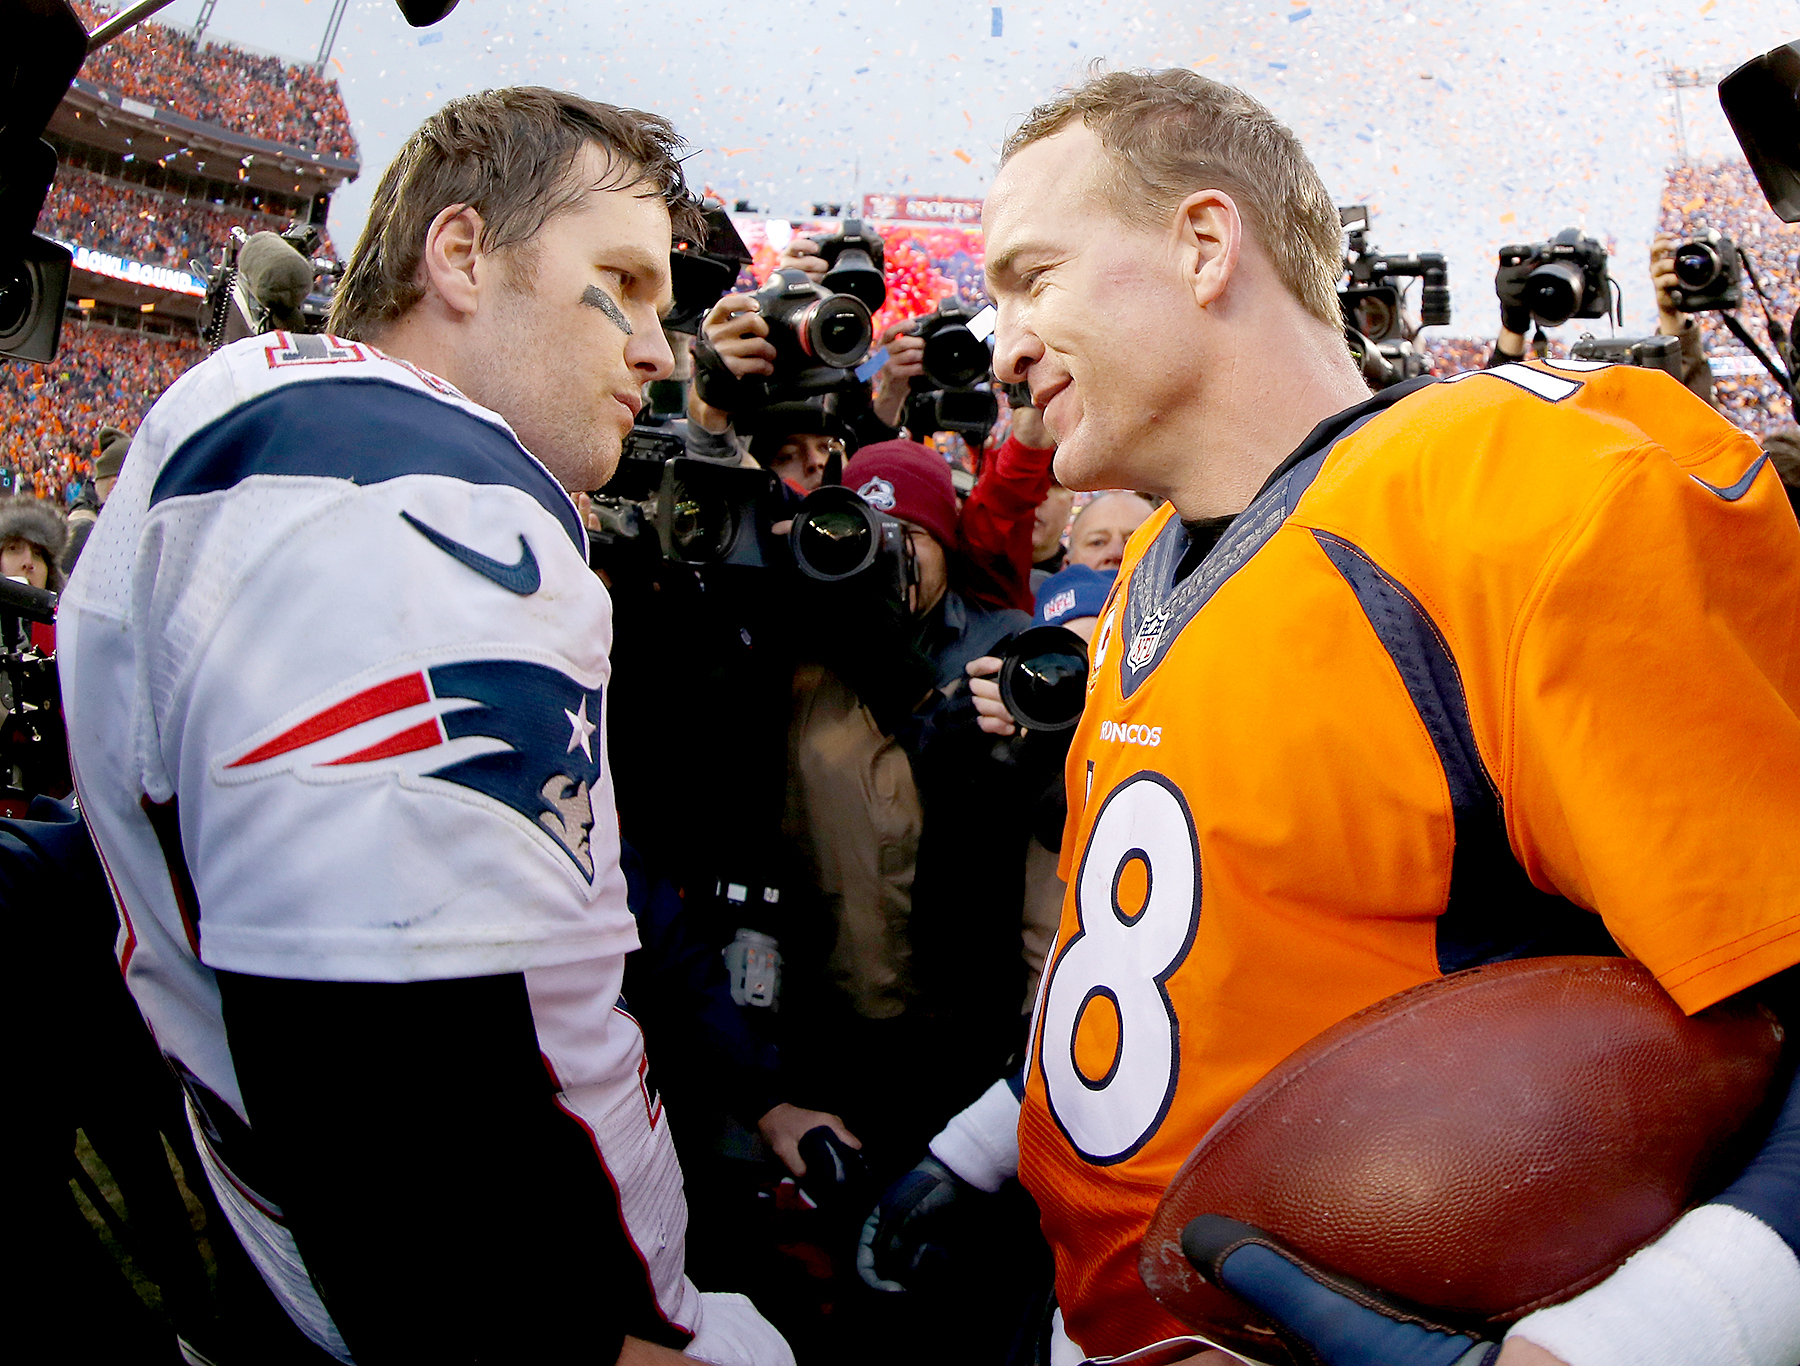 Peyton Manning, No. 18, of the Denver Broncos and Tom Brady, No. 12, of the New England Patriots speak after the AFC Championship game at Sports Authority Field at Mile High on January 24, 2016, in Denver.